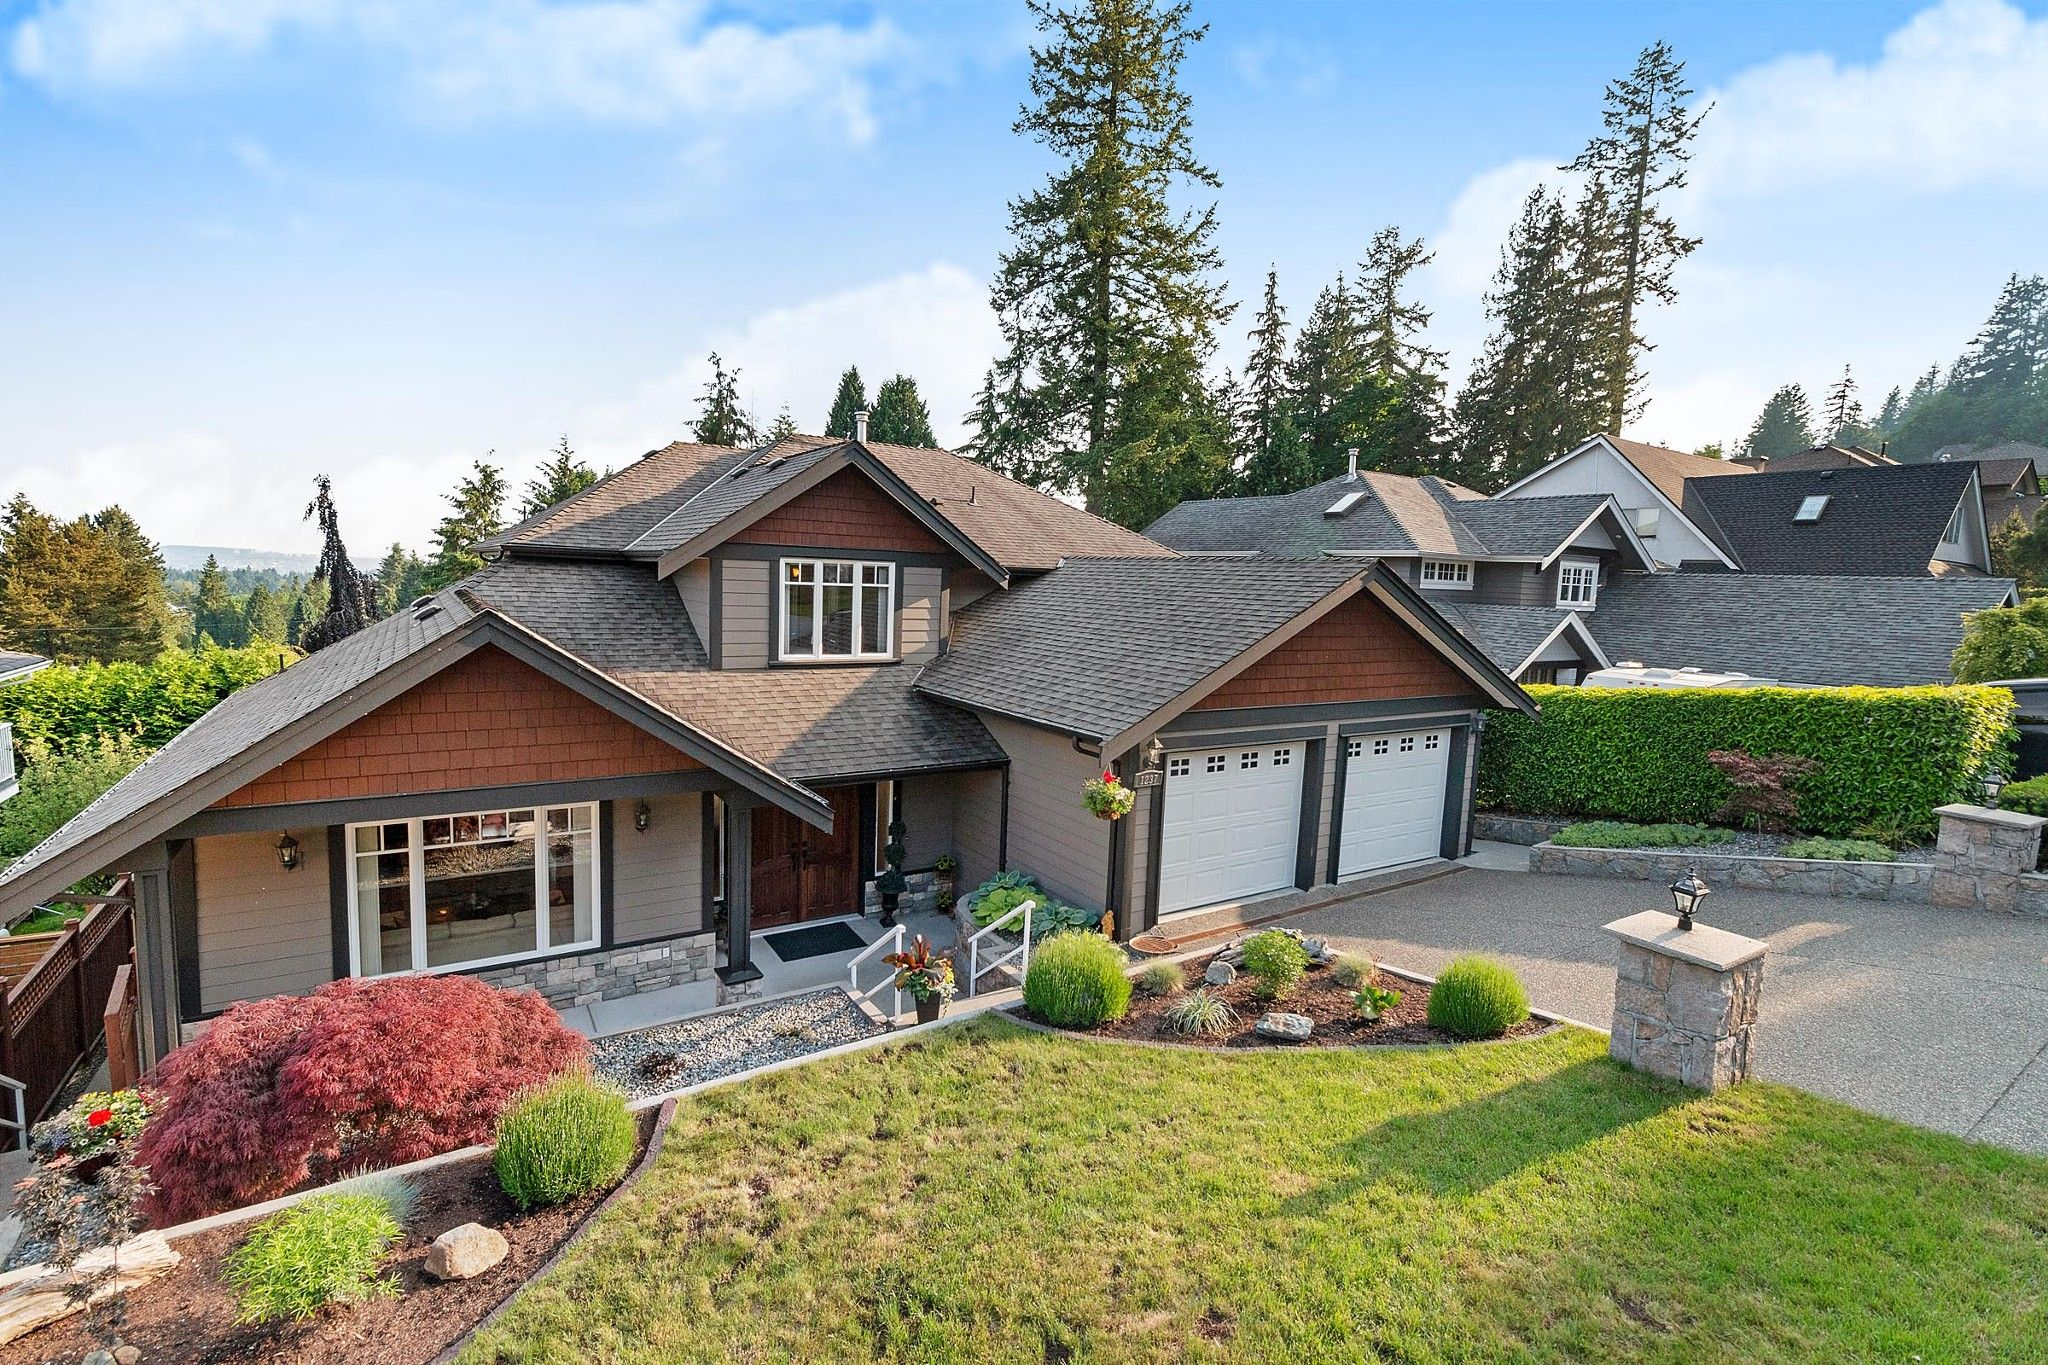 Main Photo: 1237 DYCK Road in North Vancouver: Lynn Valley House for sale : MLS®# R2374868